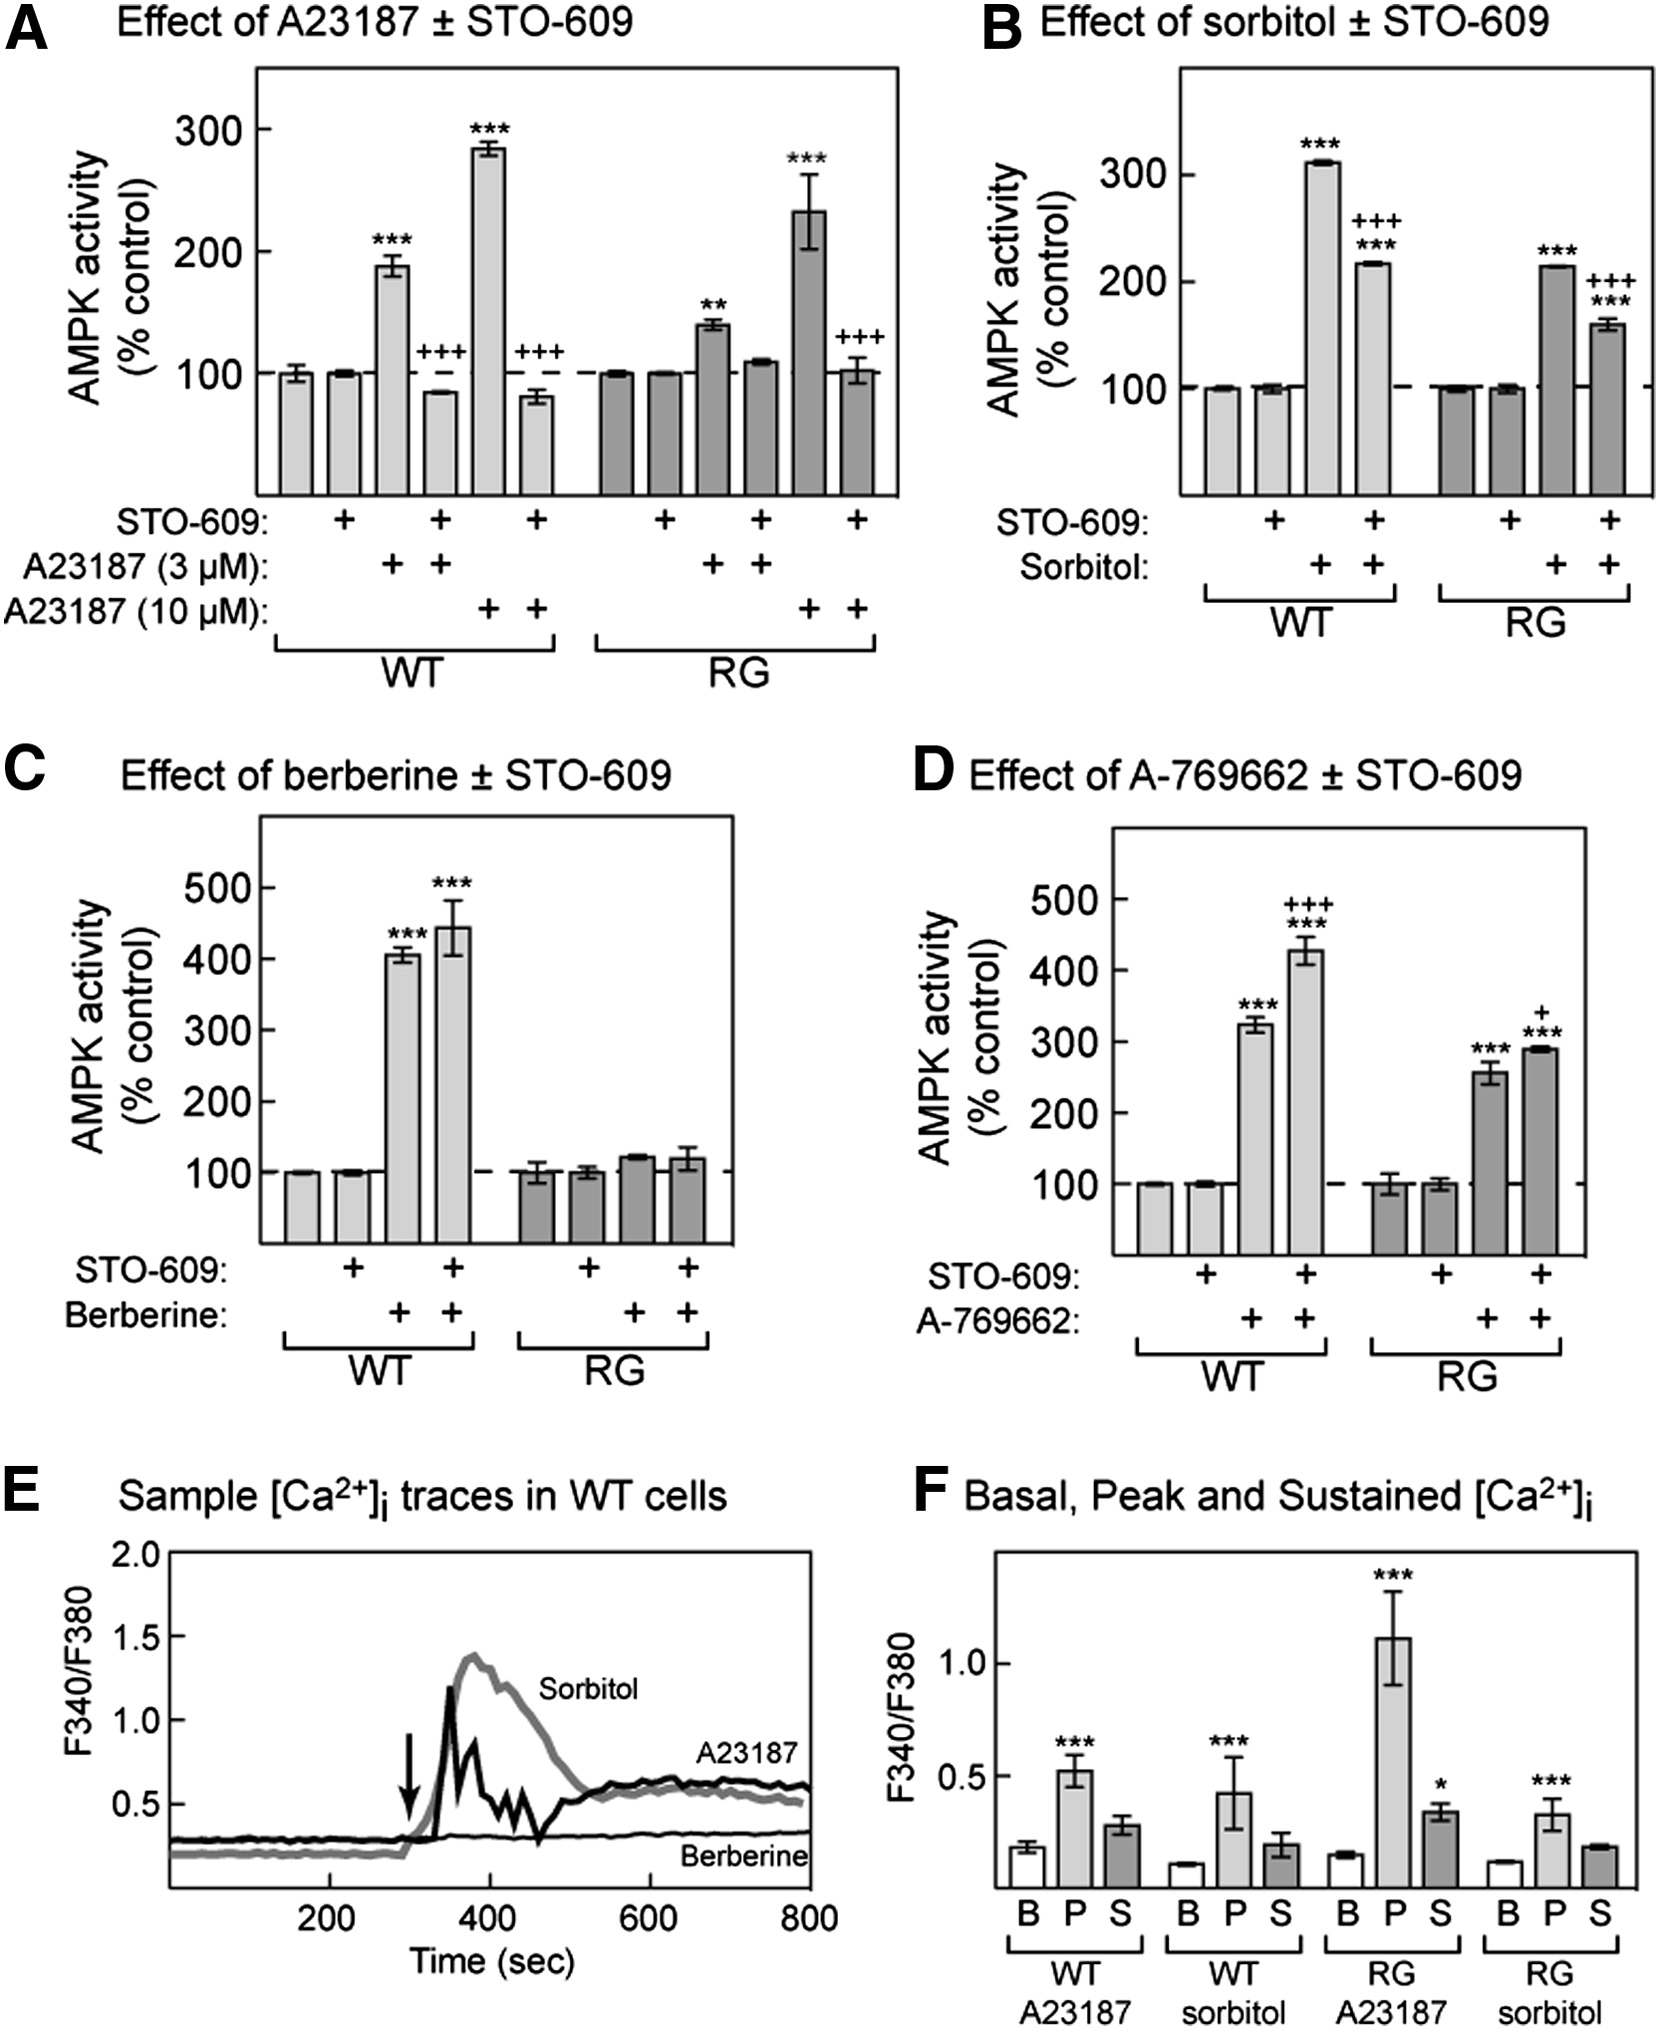 Use Of Cells Expressing Subunit Variants To Identify Diverse Mechanisms Of Ampk Activation